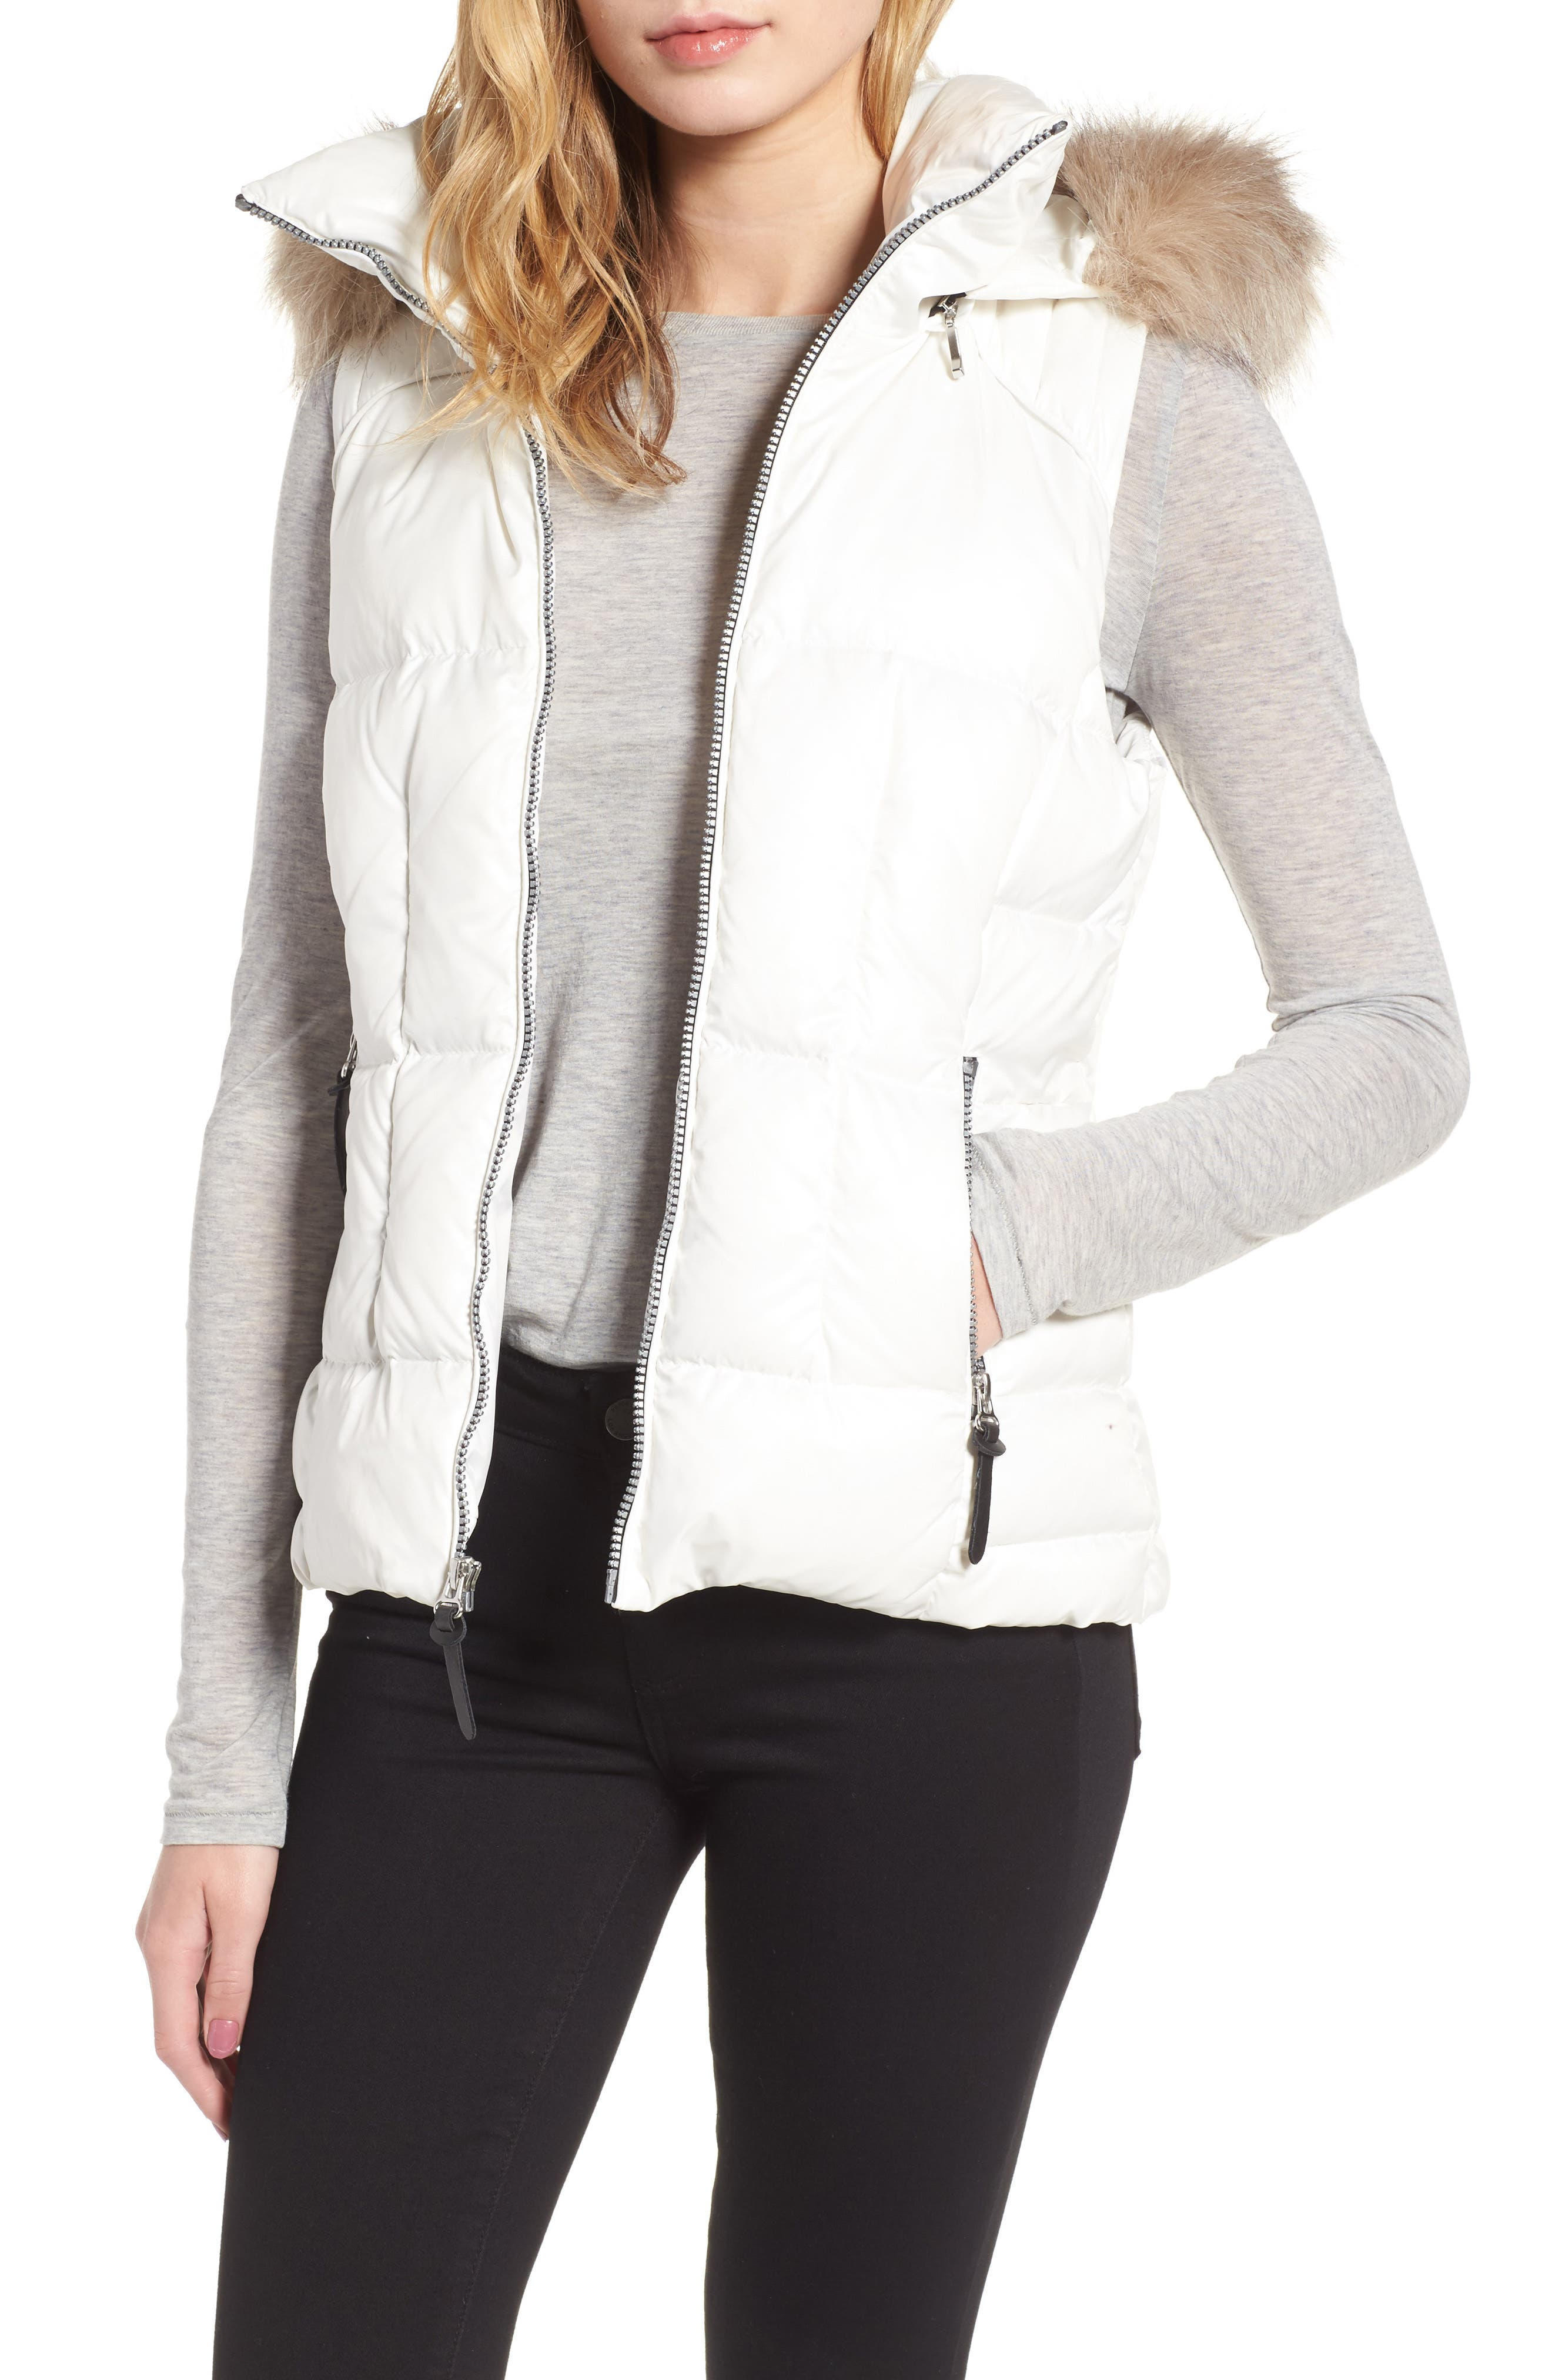 Main Image - Andrew Marc Lanie Puffer Vest with Faux Fur